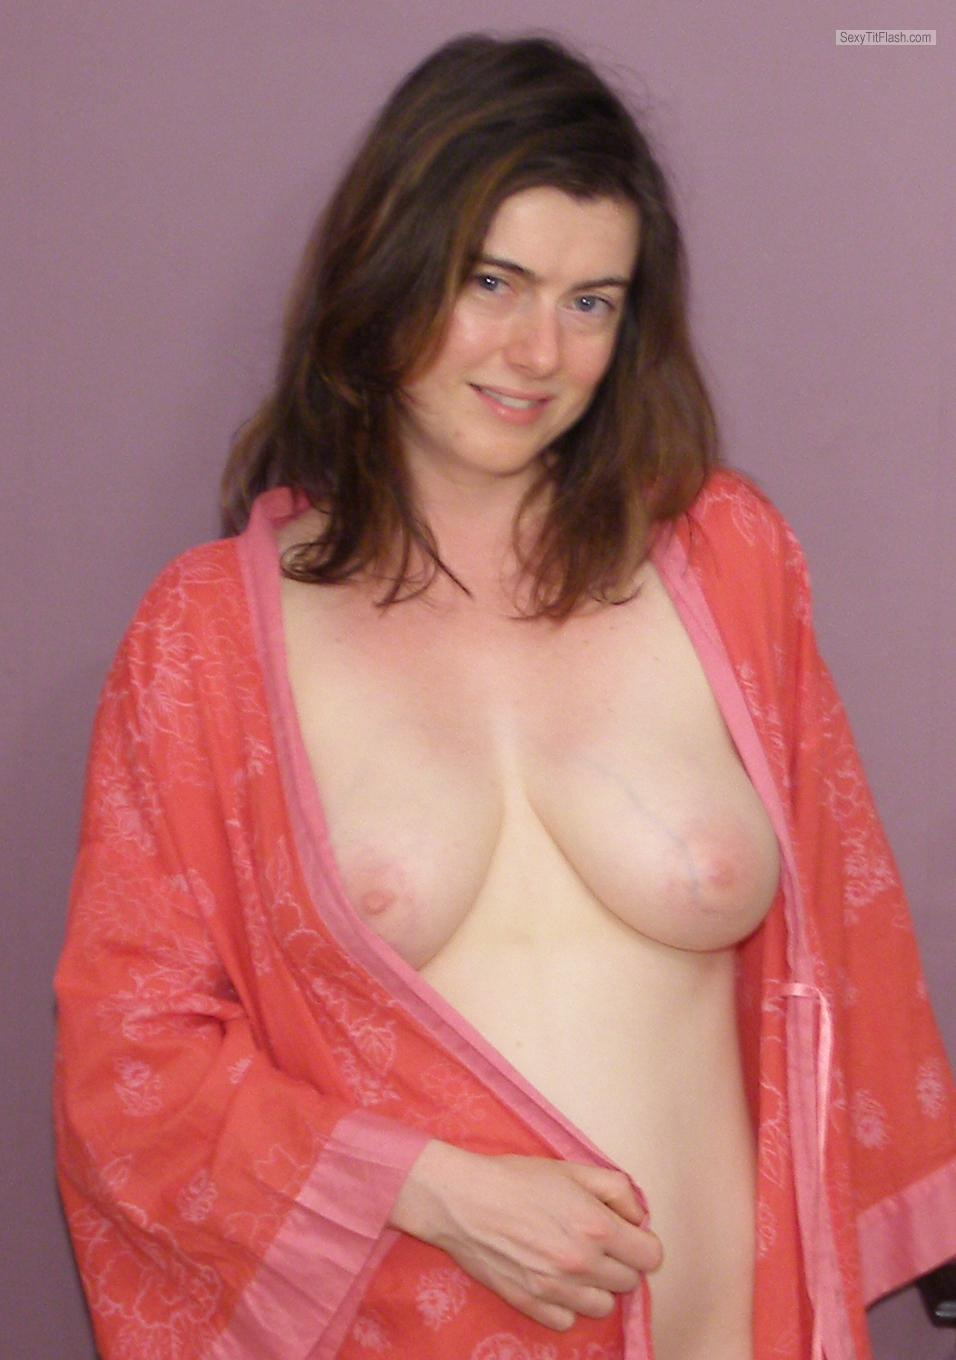 Tit Flash: My Medium Tits - Topless Beth from United Kingdom